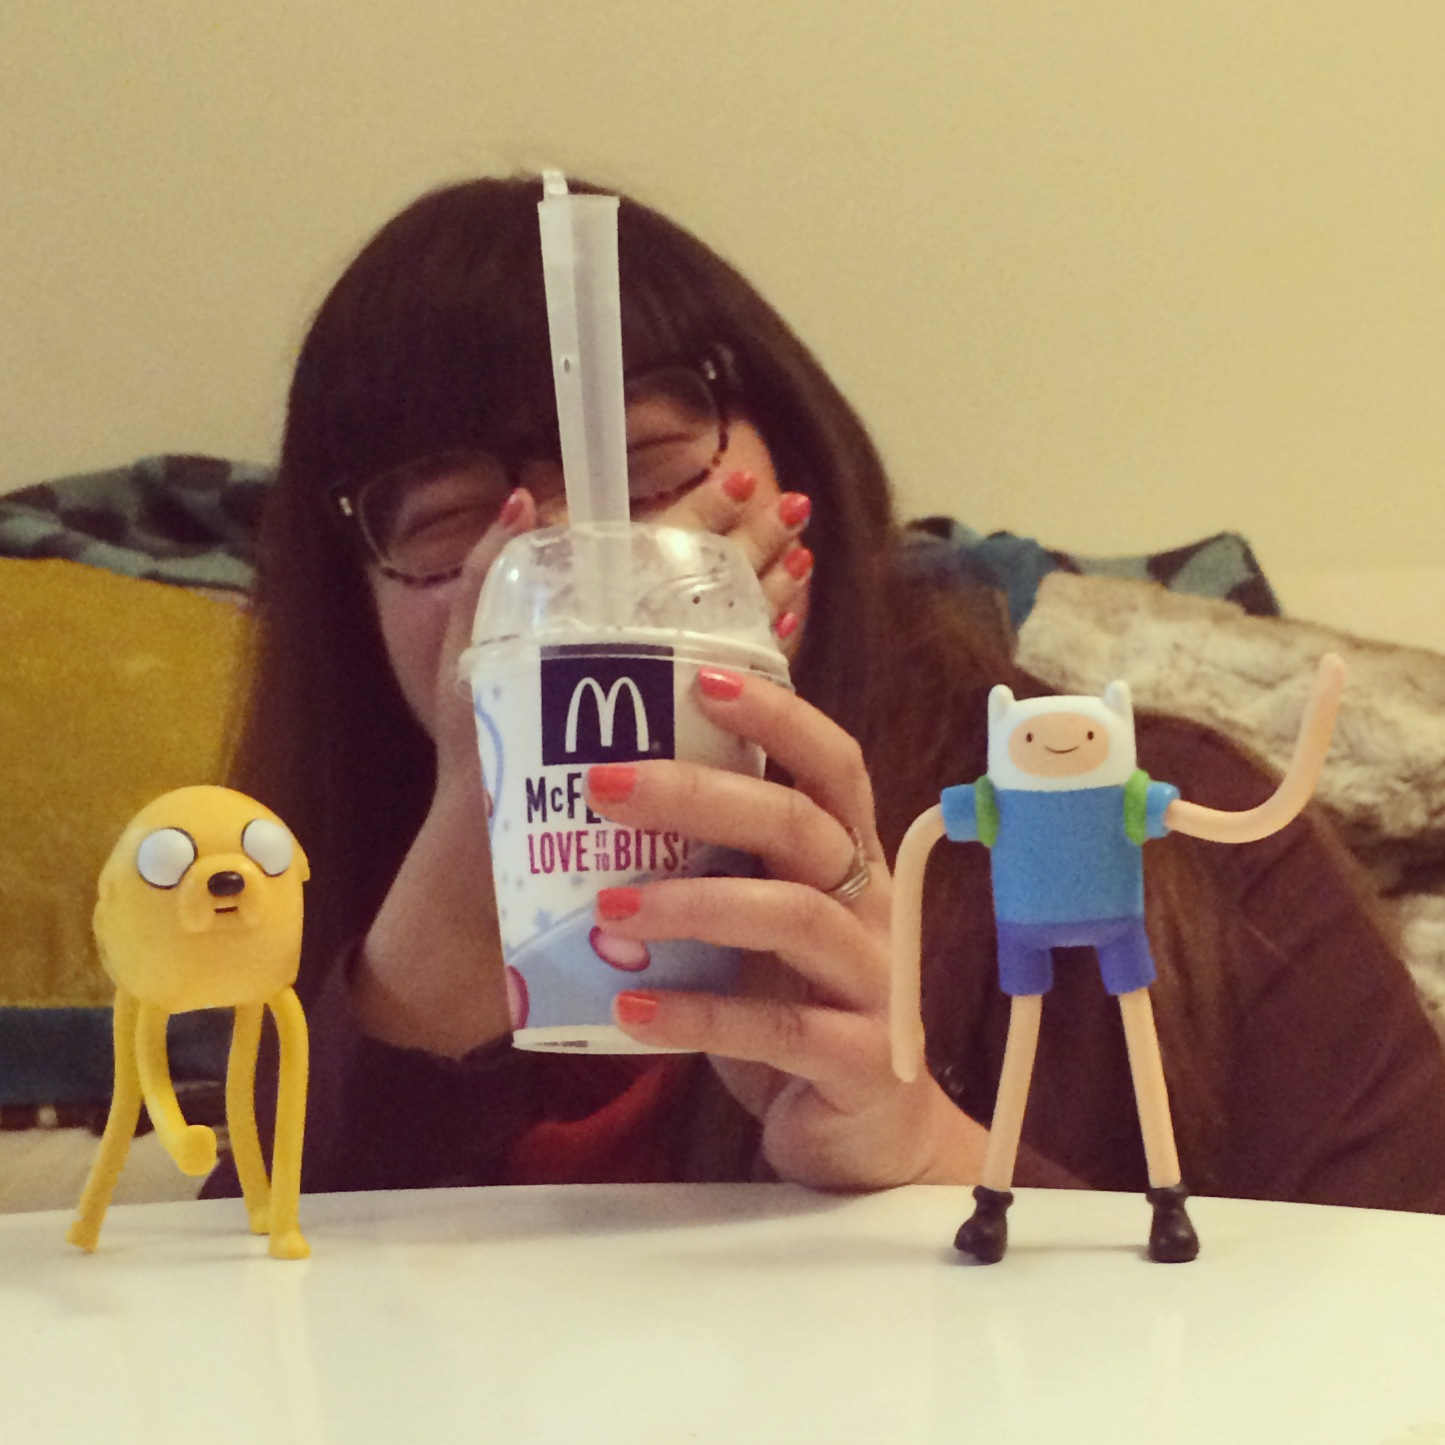 I'm on a mission to collect 6/6 Adventure Time toys at McDonald's.